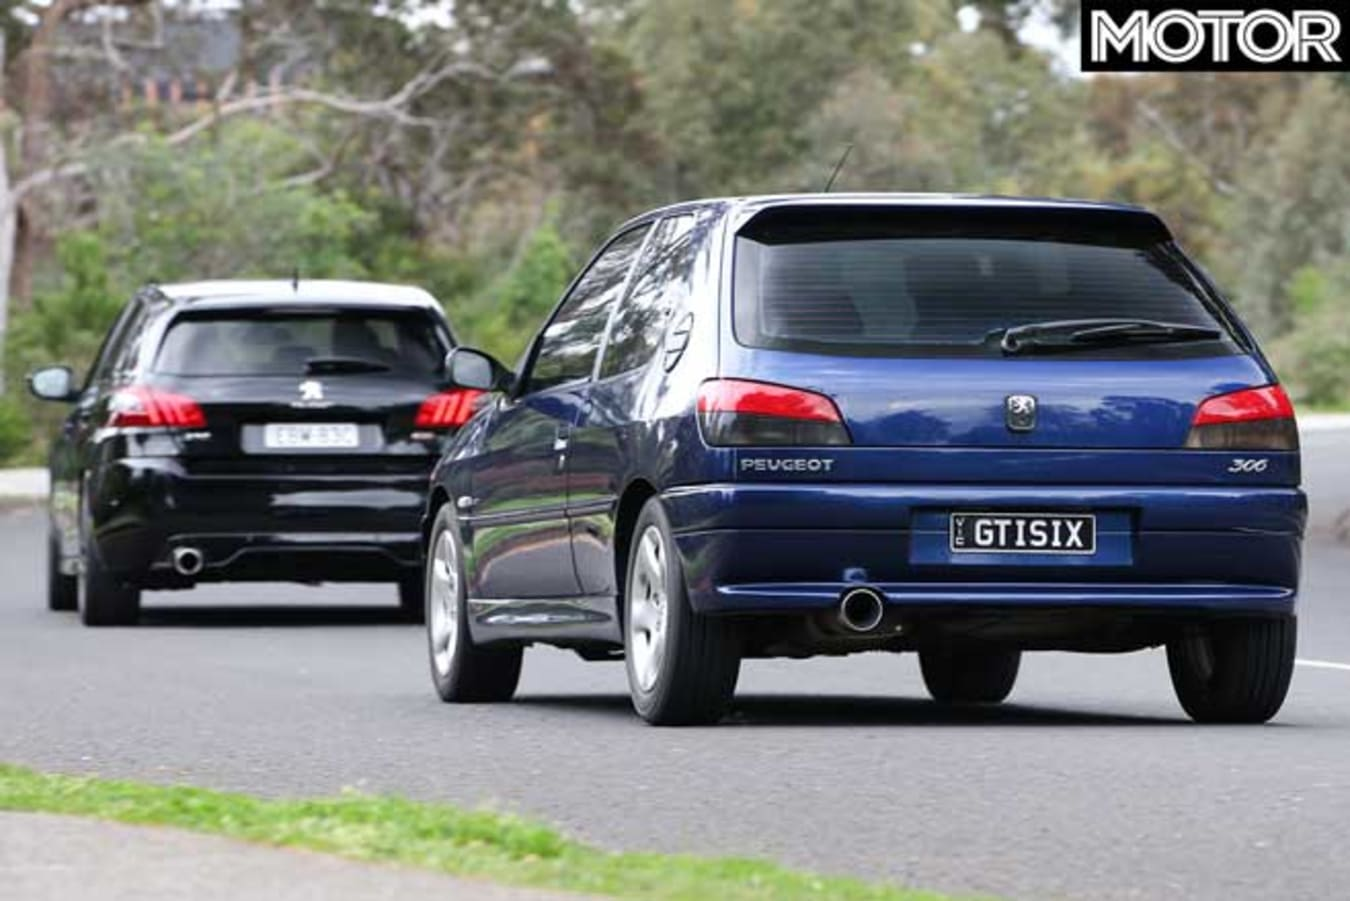 Peugeot 308 GTI And 306 G Ti Performance Comparison Jpg